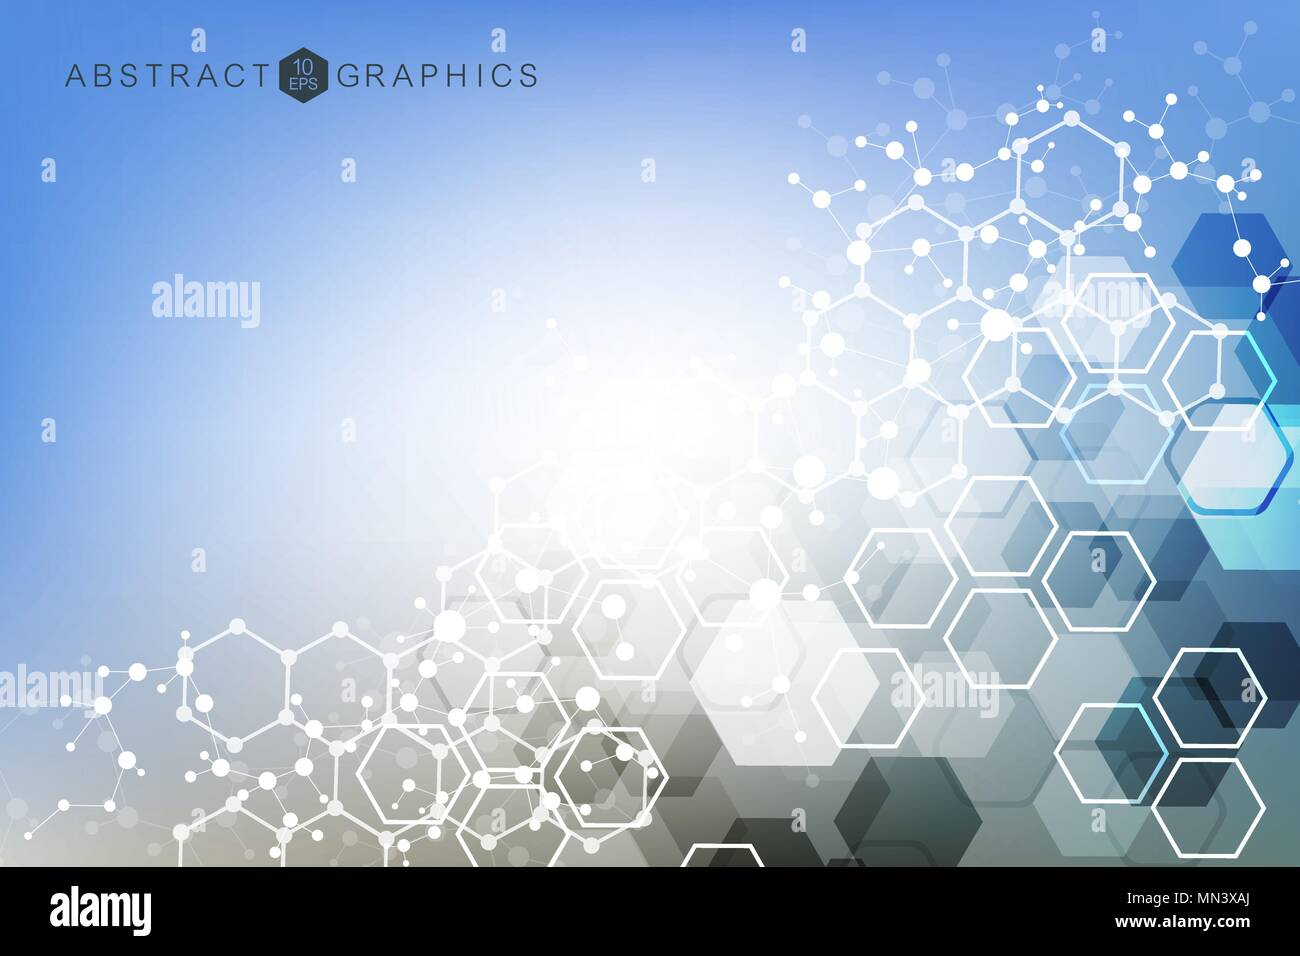 Technology Abstract Background Stock Illustration: Hexagonal Abstract Background. Big Data Visualization